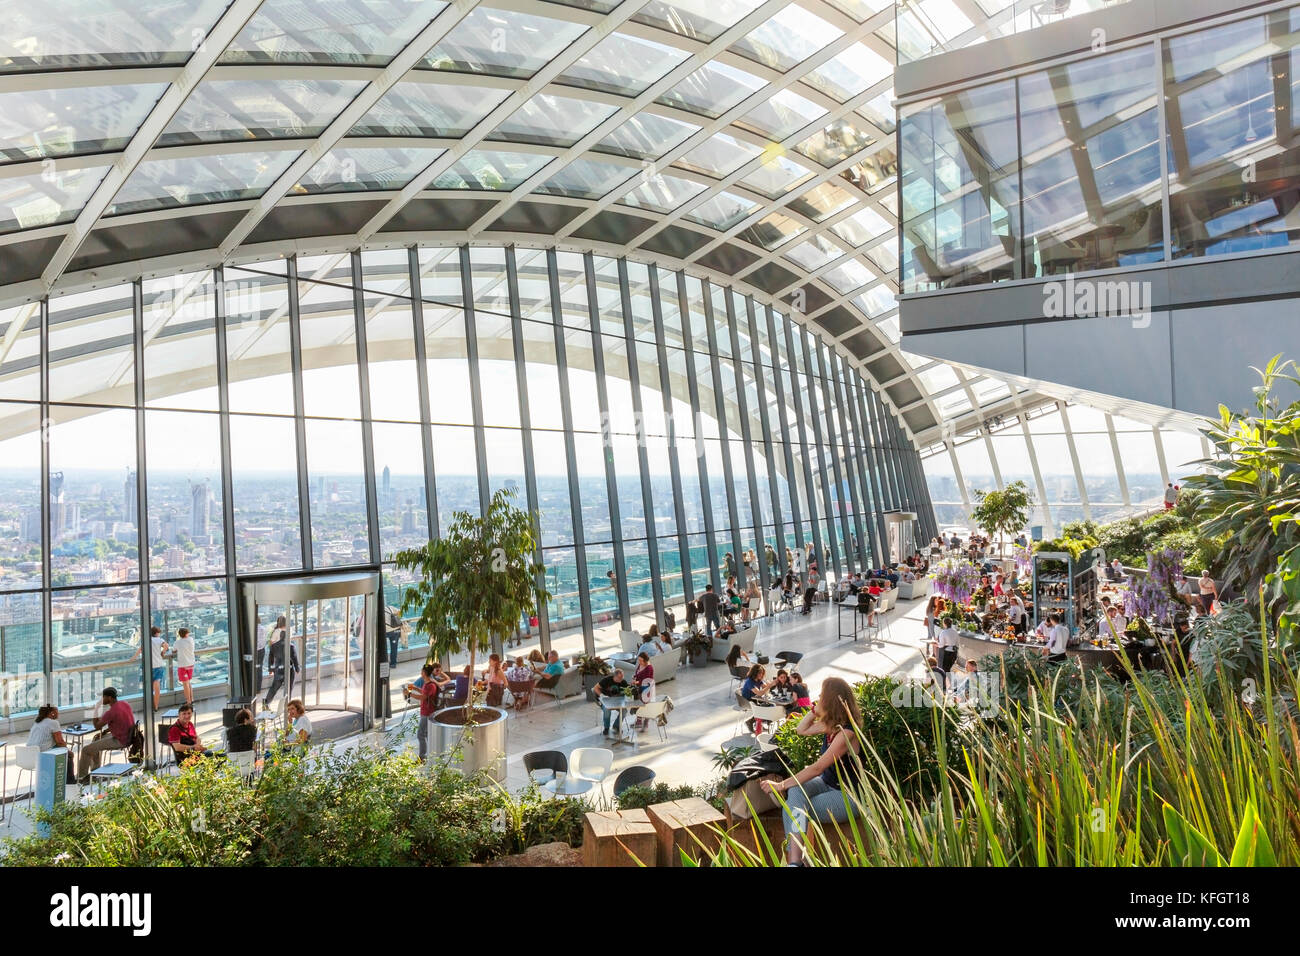 Sky Garden at 20 Fenchurch Street in London - Stock Image